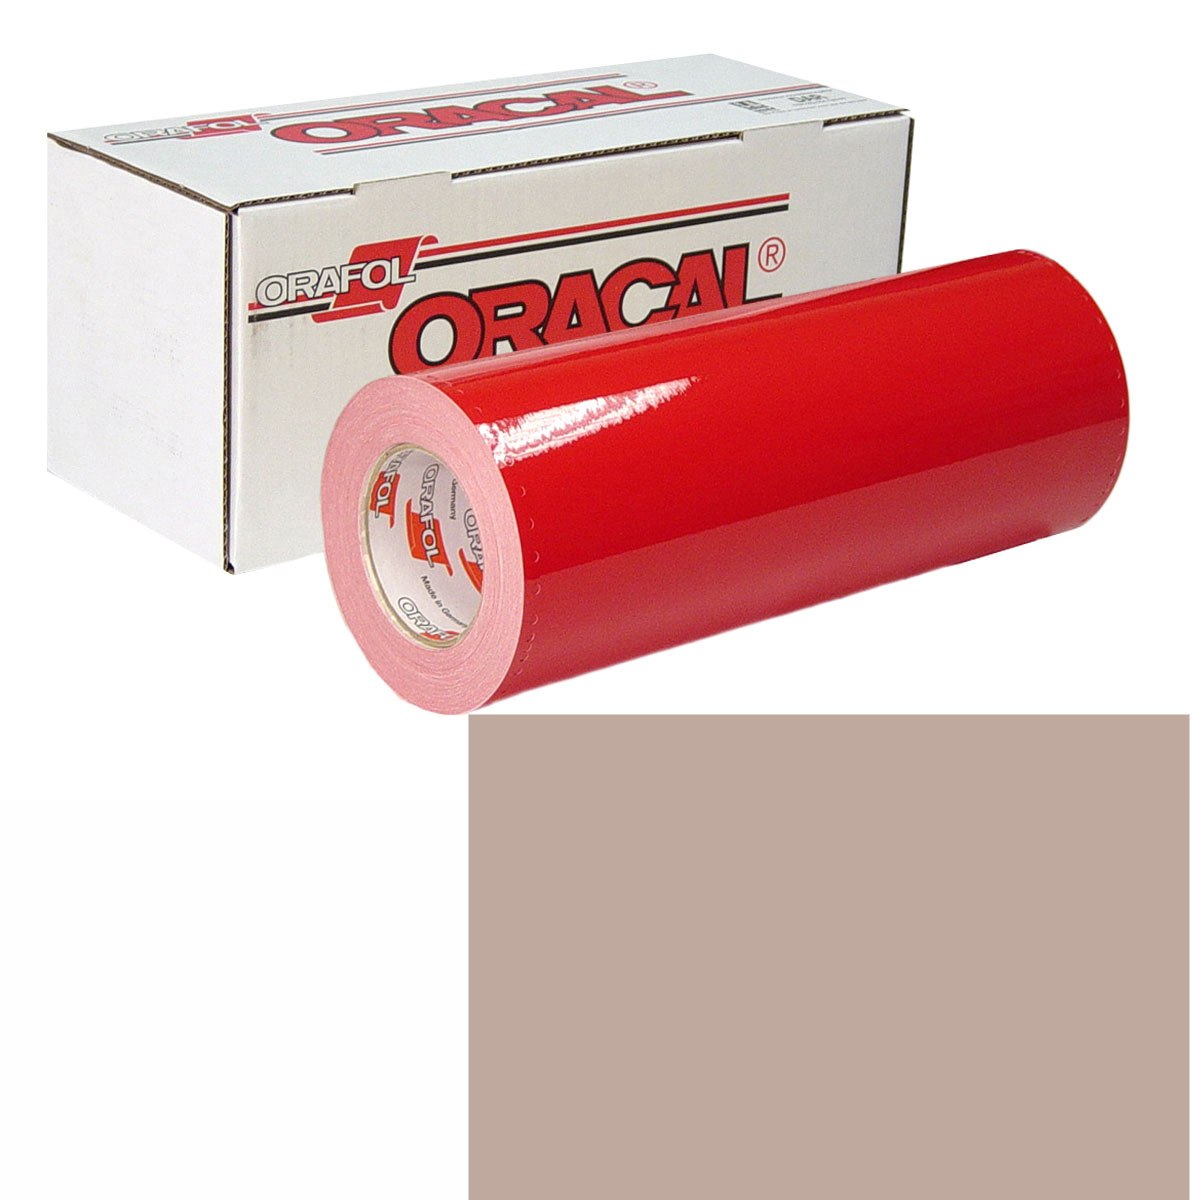 ORACAL 951M Unp 48In X 50Yd 923 Light Brown